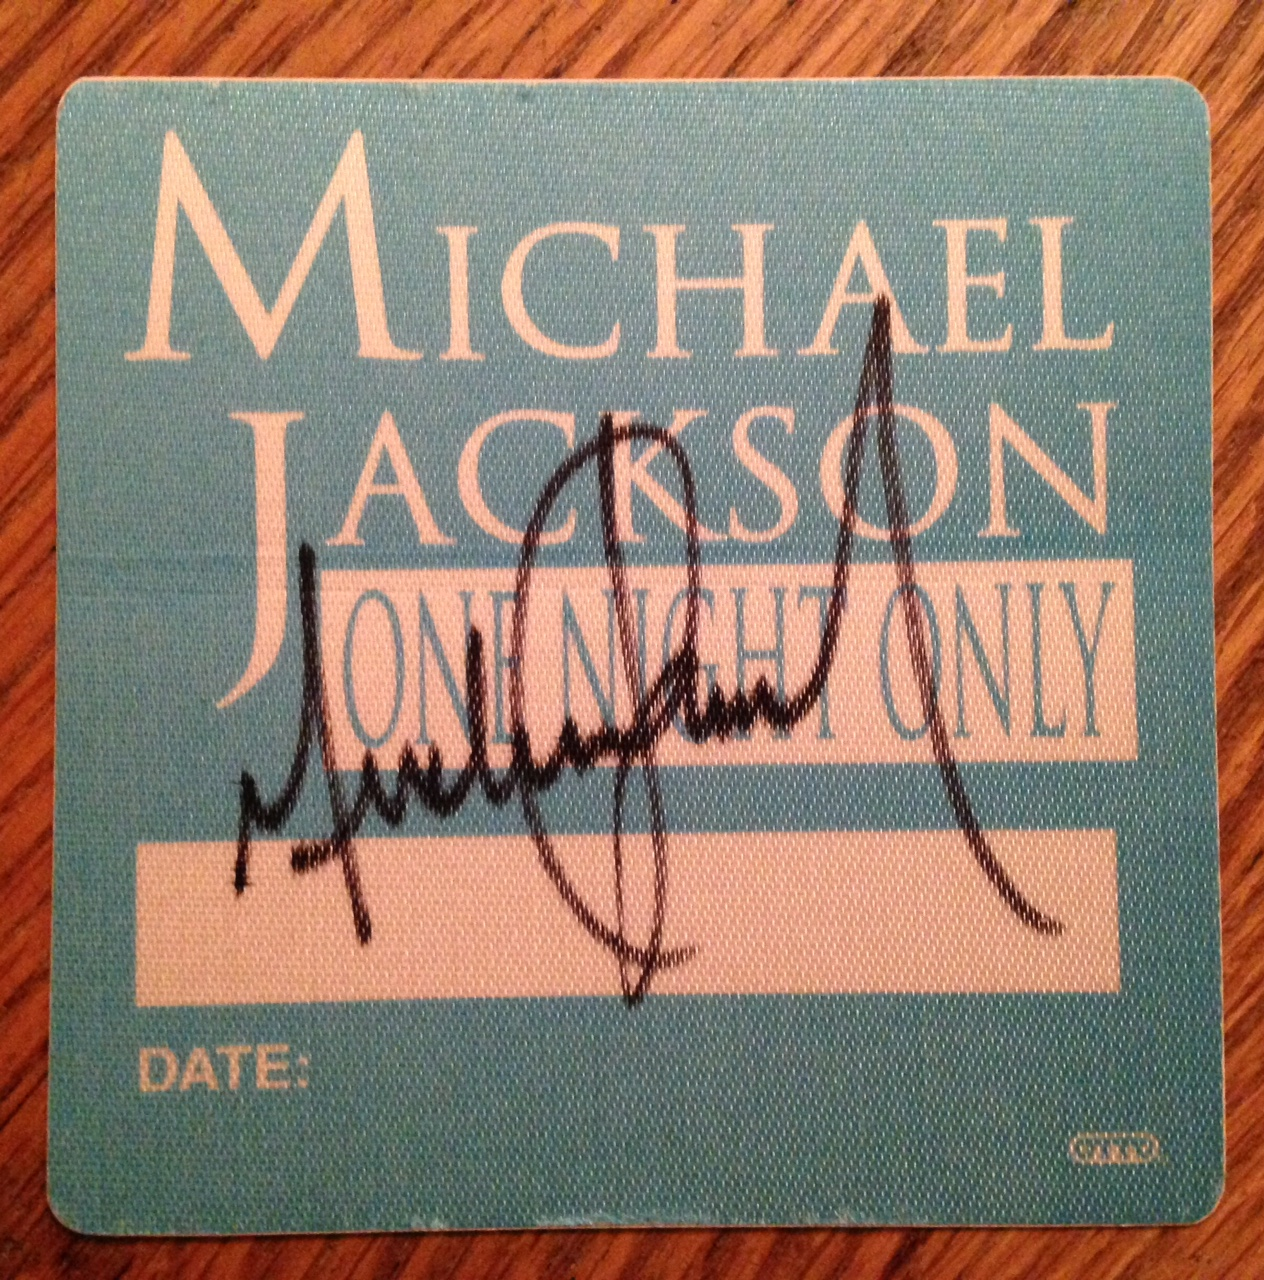 "Lot 58 - Signed Michael Jackson """"One Night Only' Backstage pass from tour."